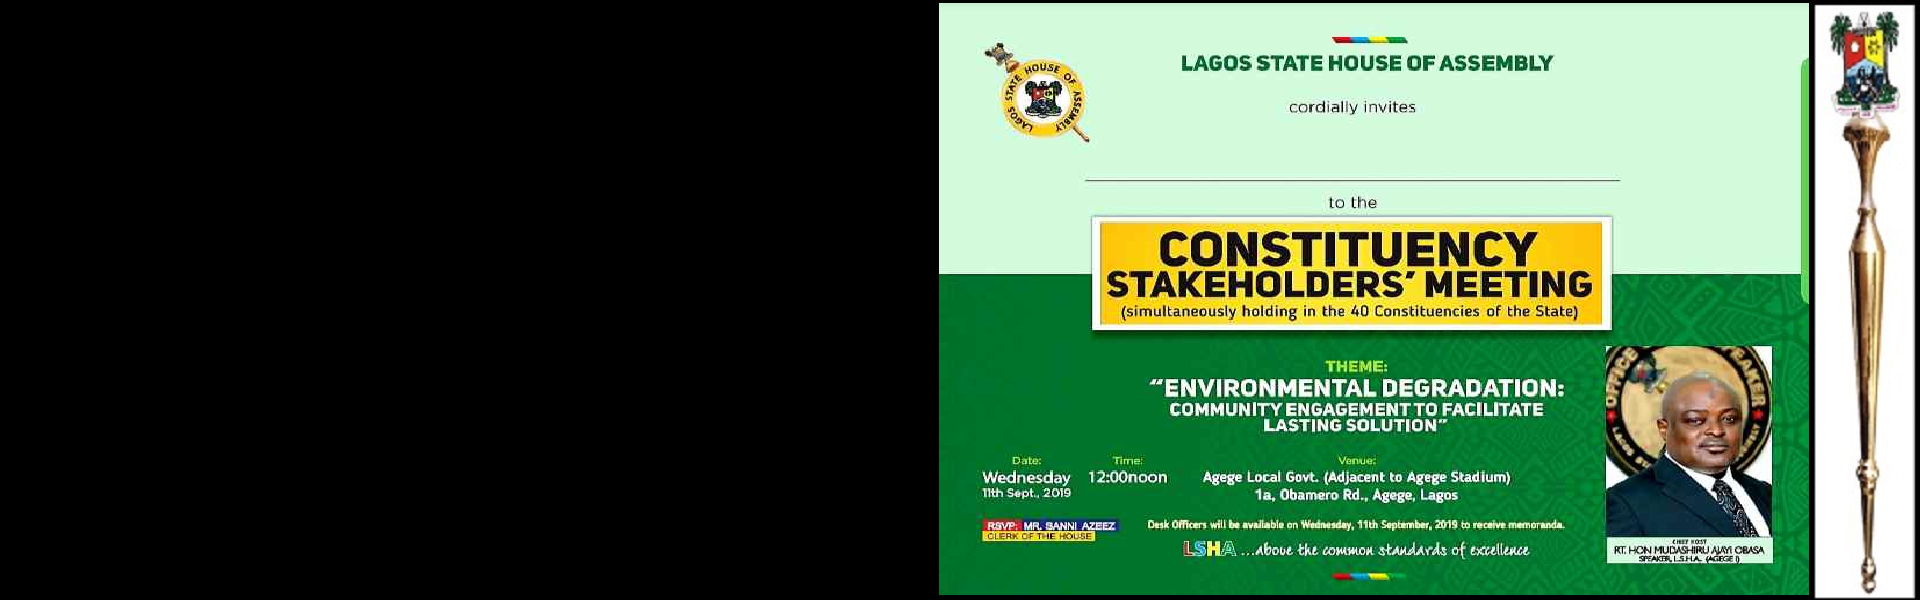 Lagos State House of Assembly hosts its annual Stakeholders meeting